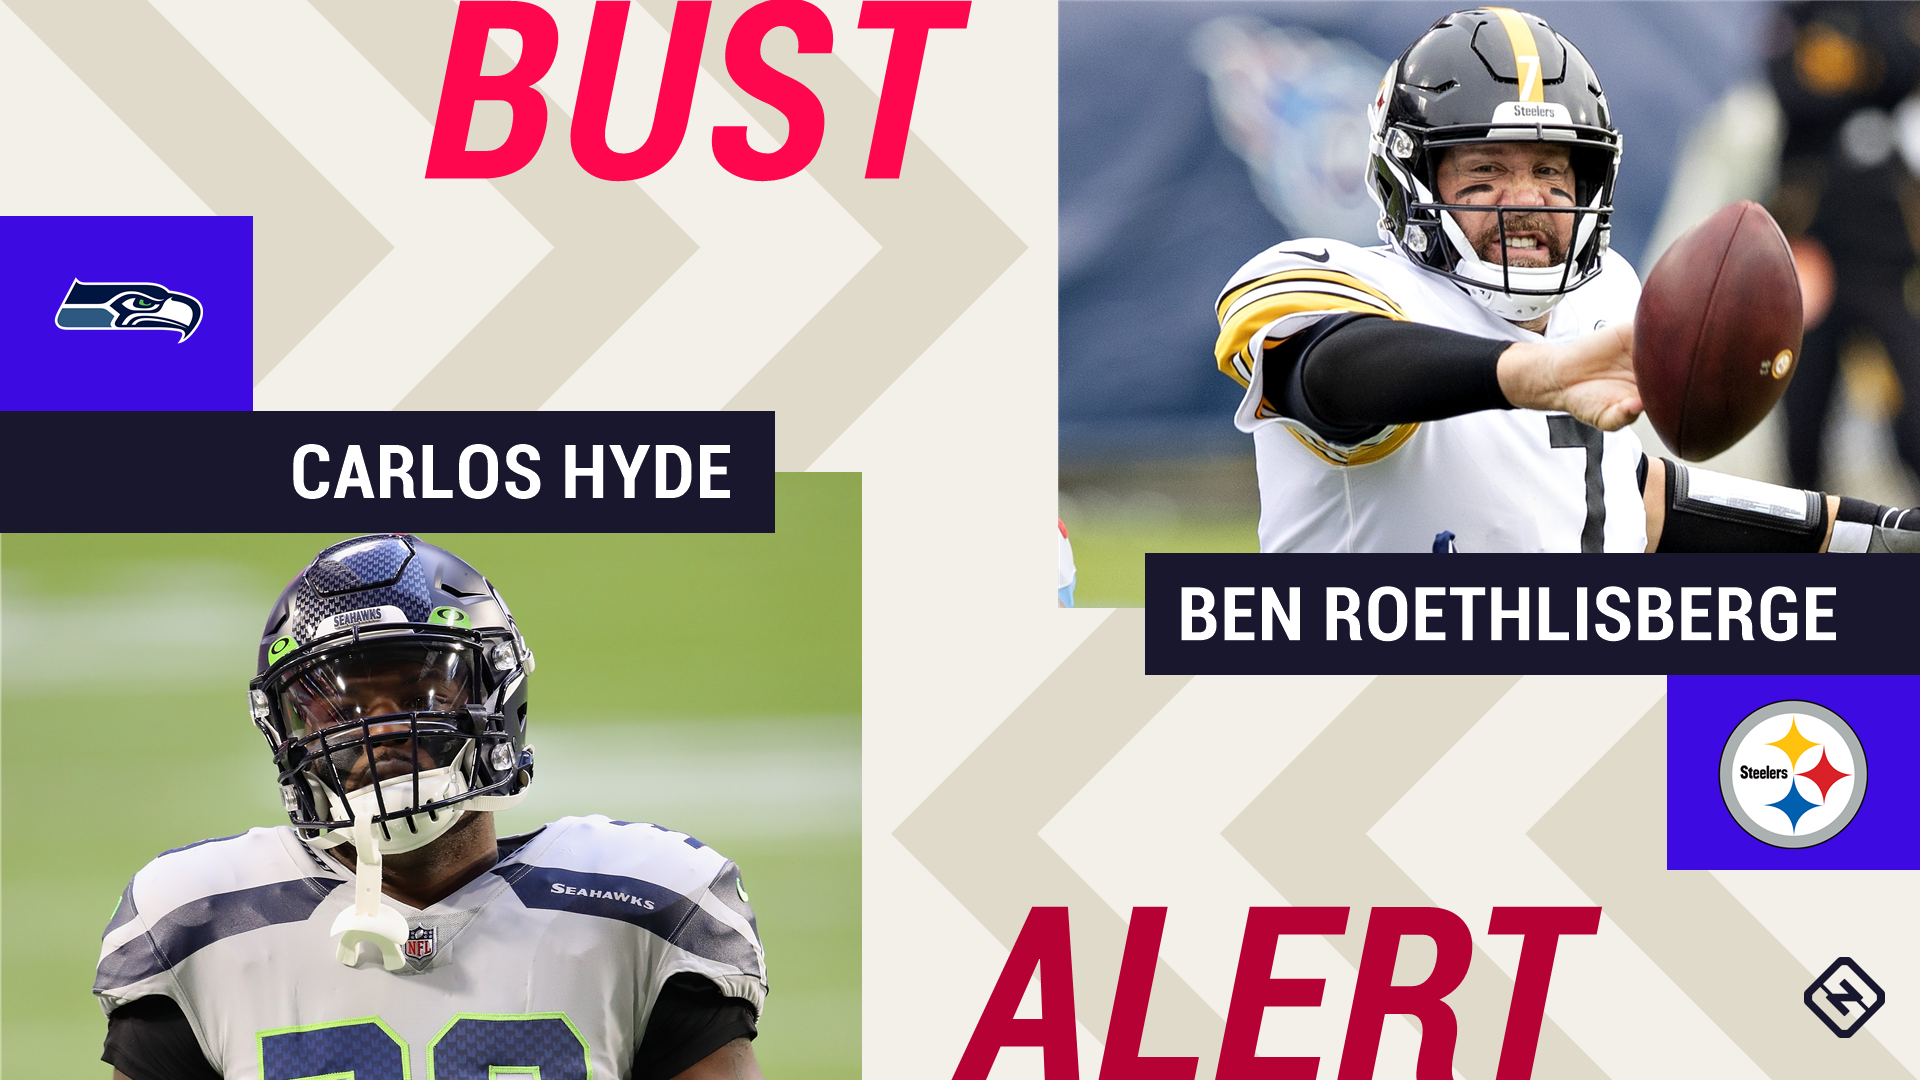 Week 8 Fantasy Busts: Carlos Hyde, Ben Roethlisberger among 'risky starts' in tough matchups